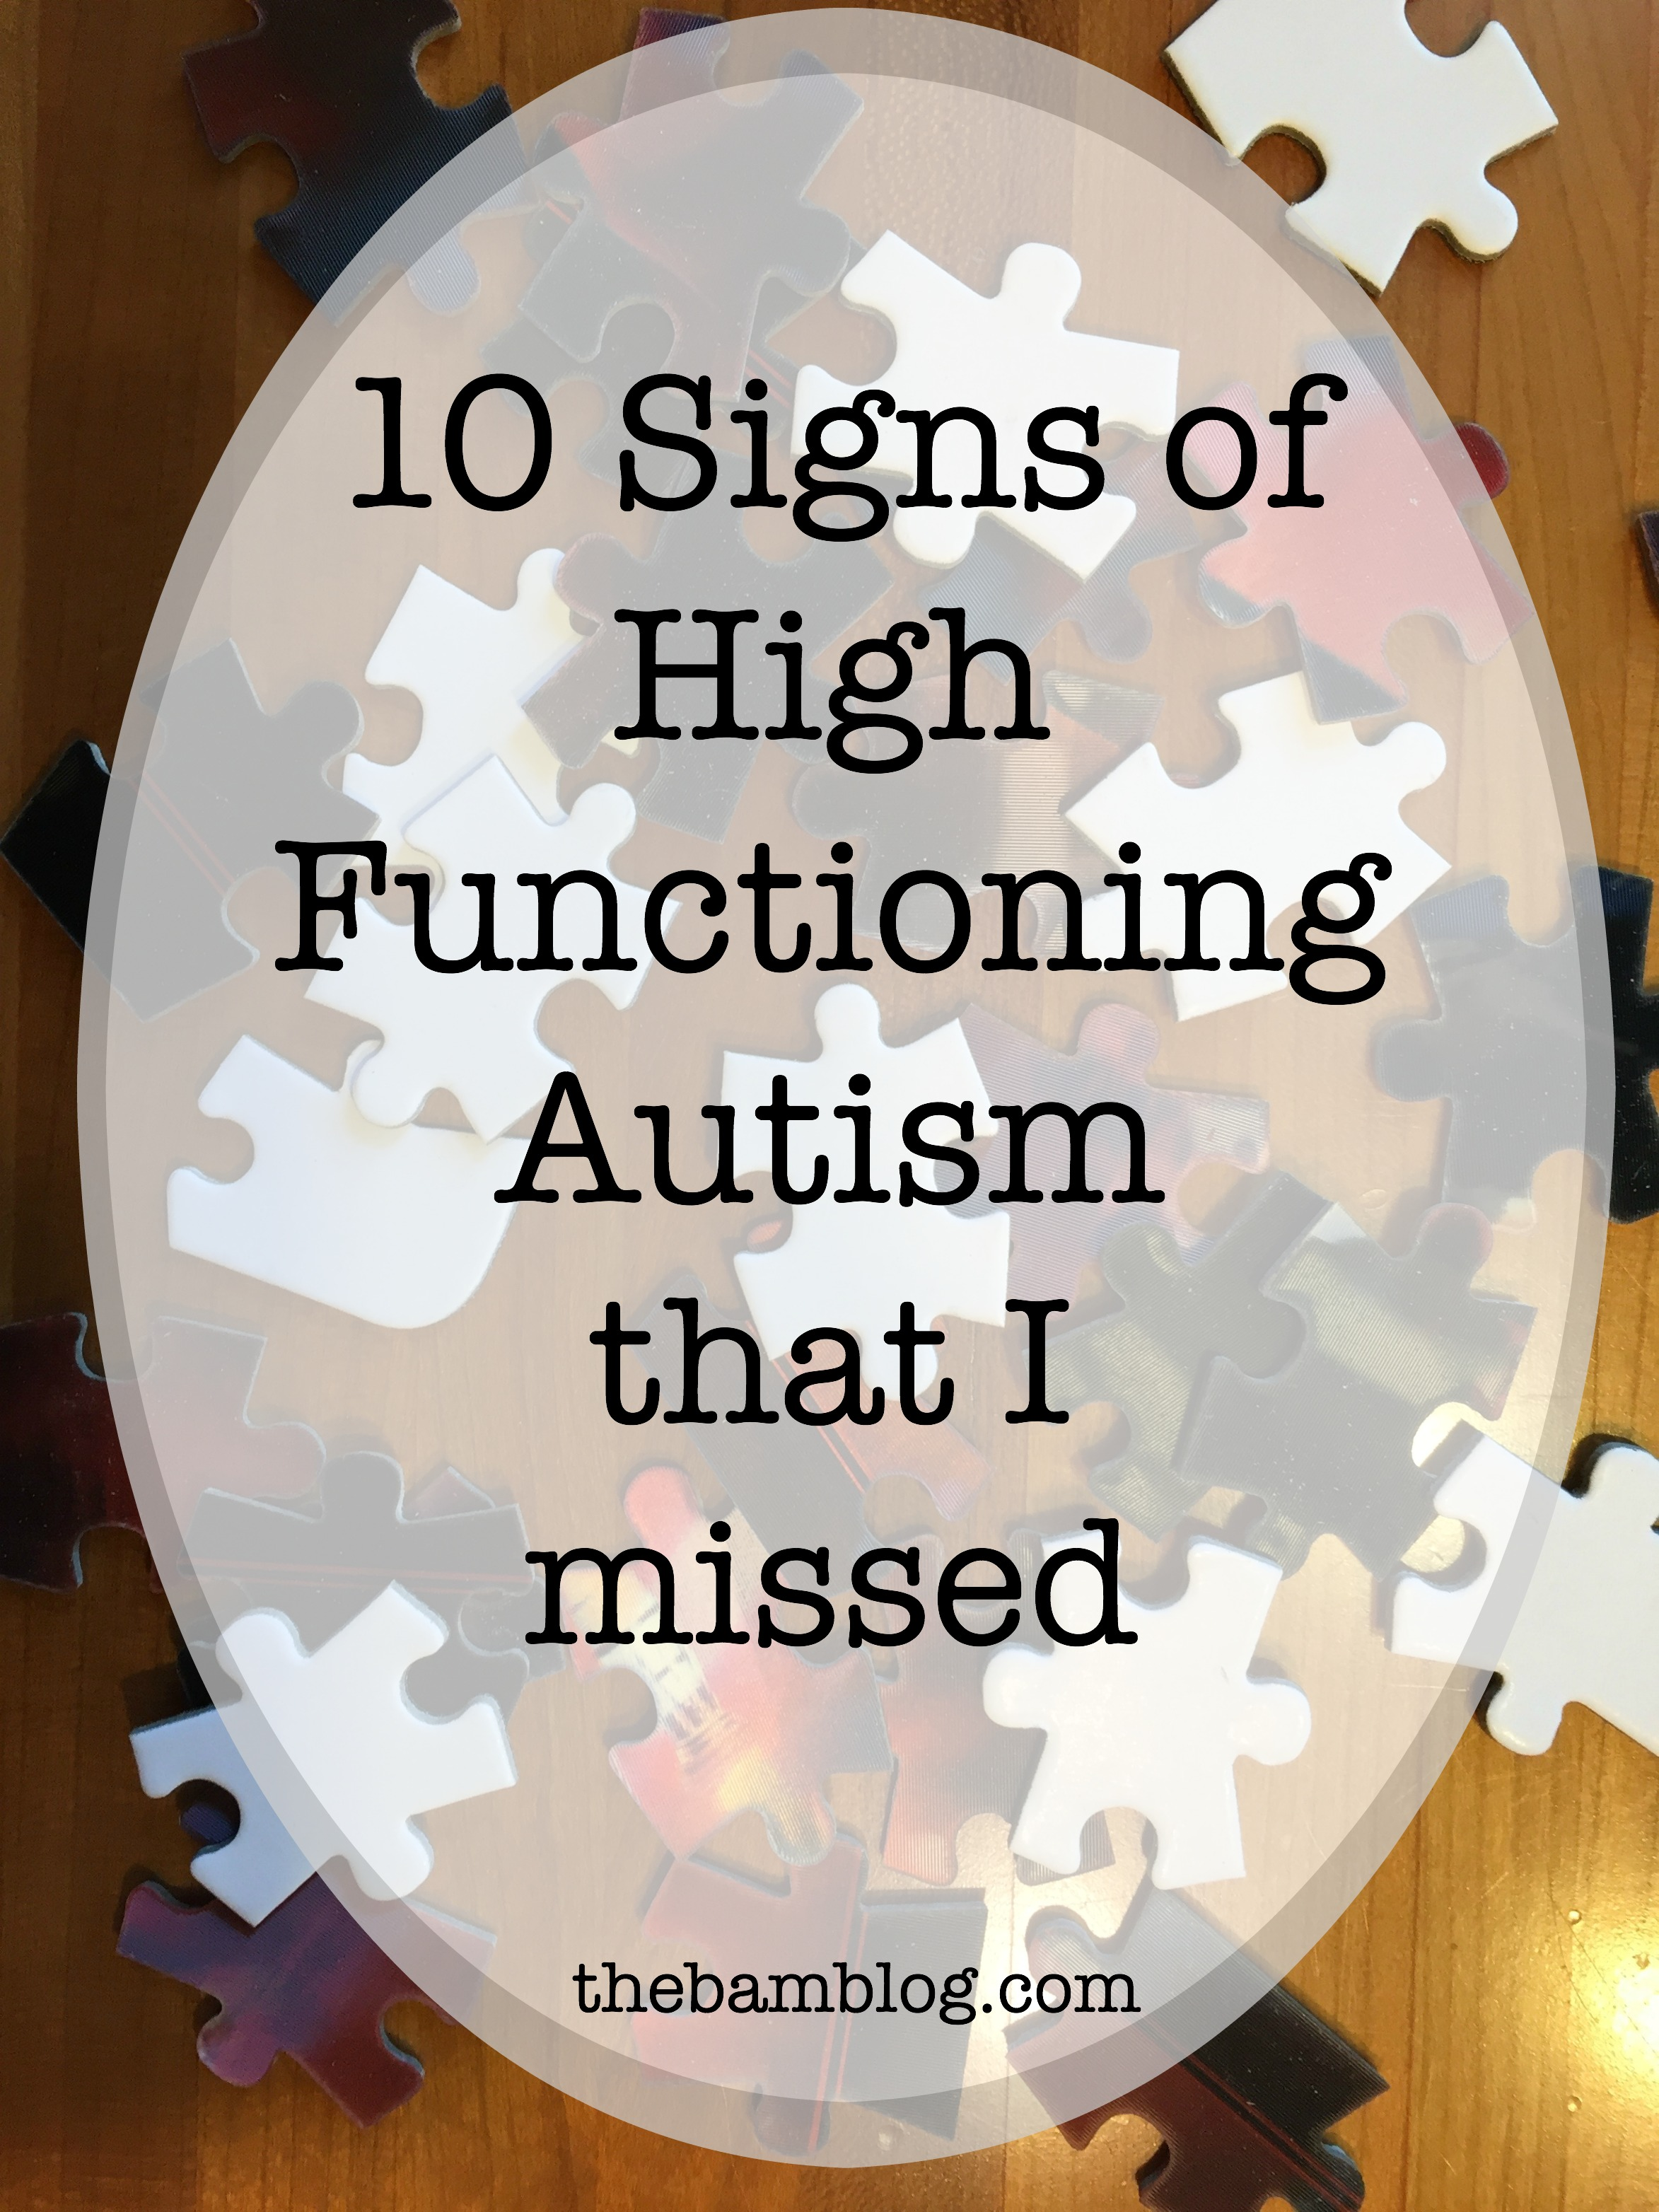 What are the signs of Autism